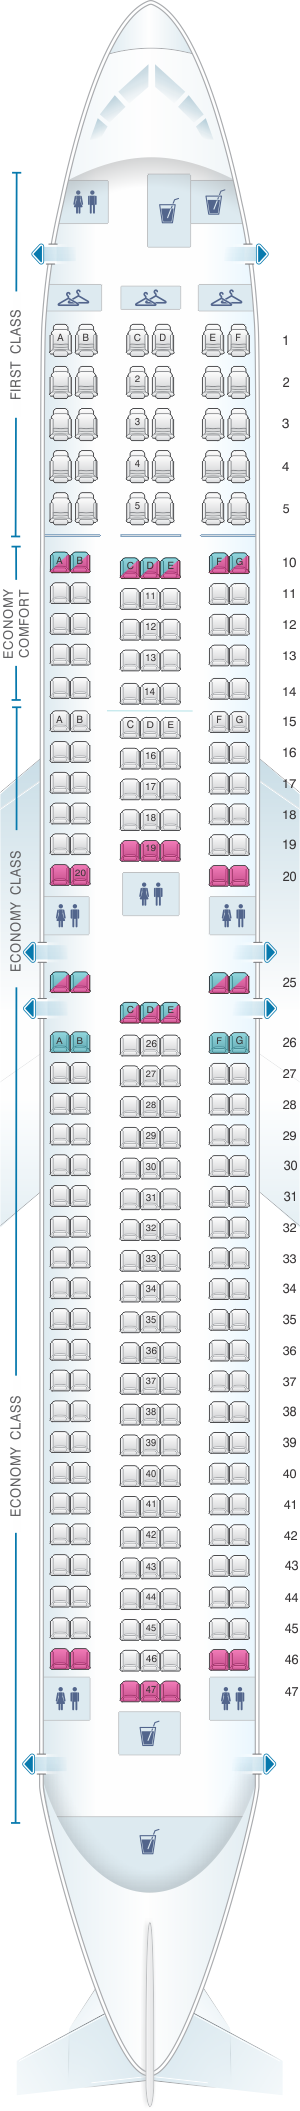 Seat map for Delta Air Lines Boeing B767 300 (76Q-76P)